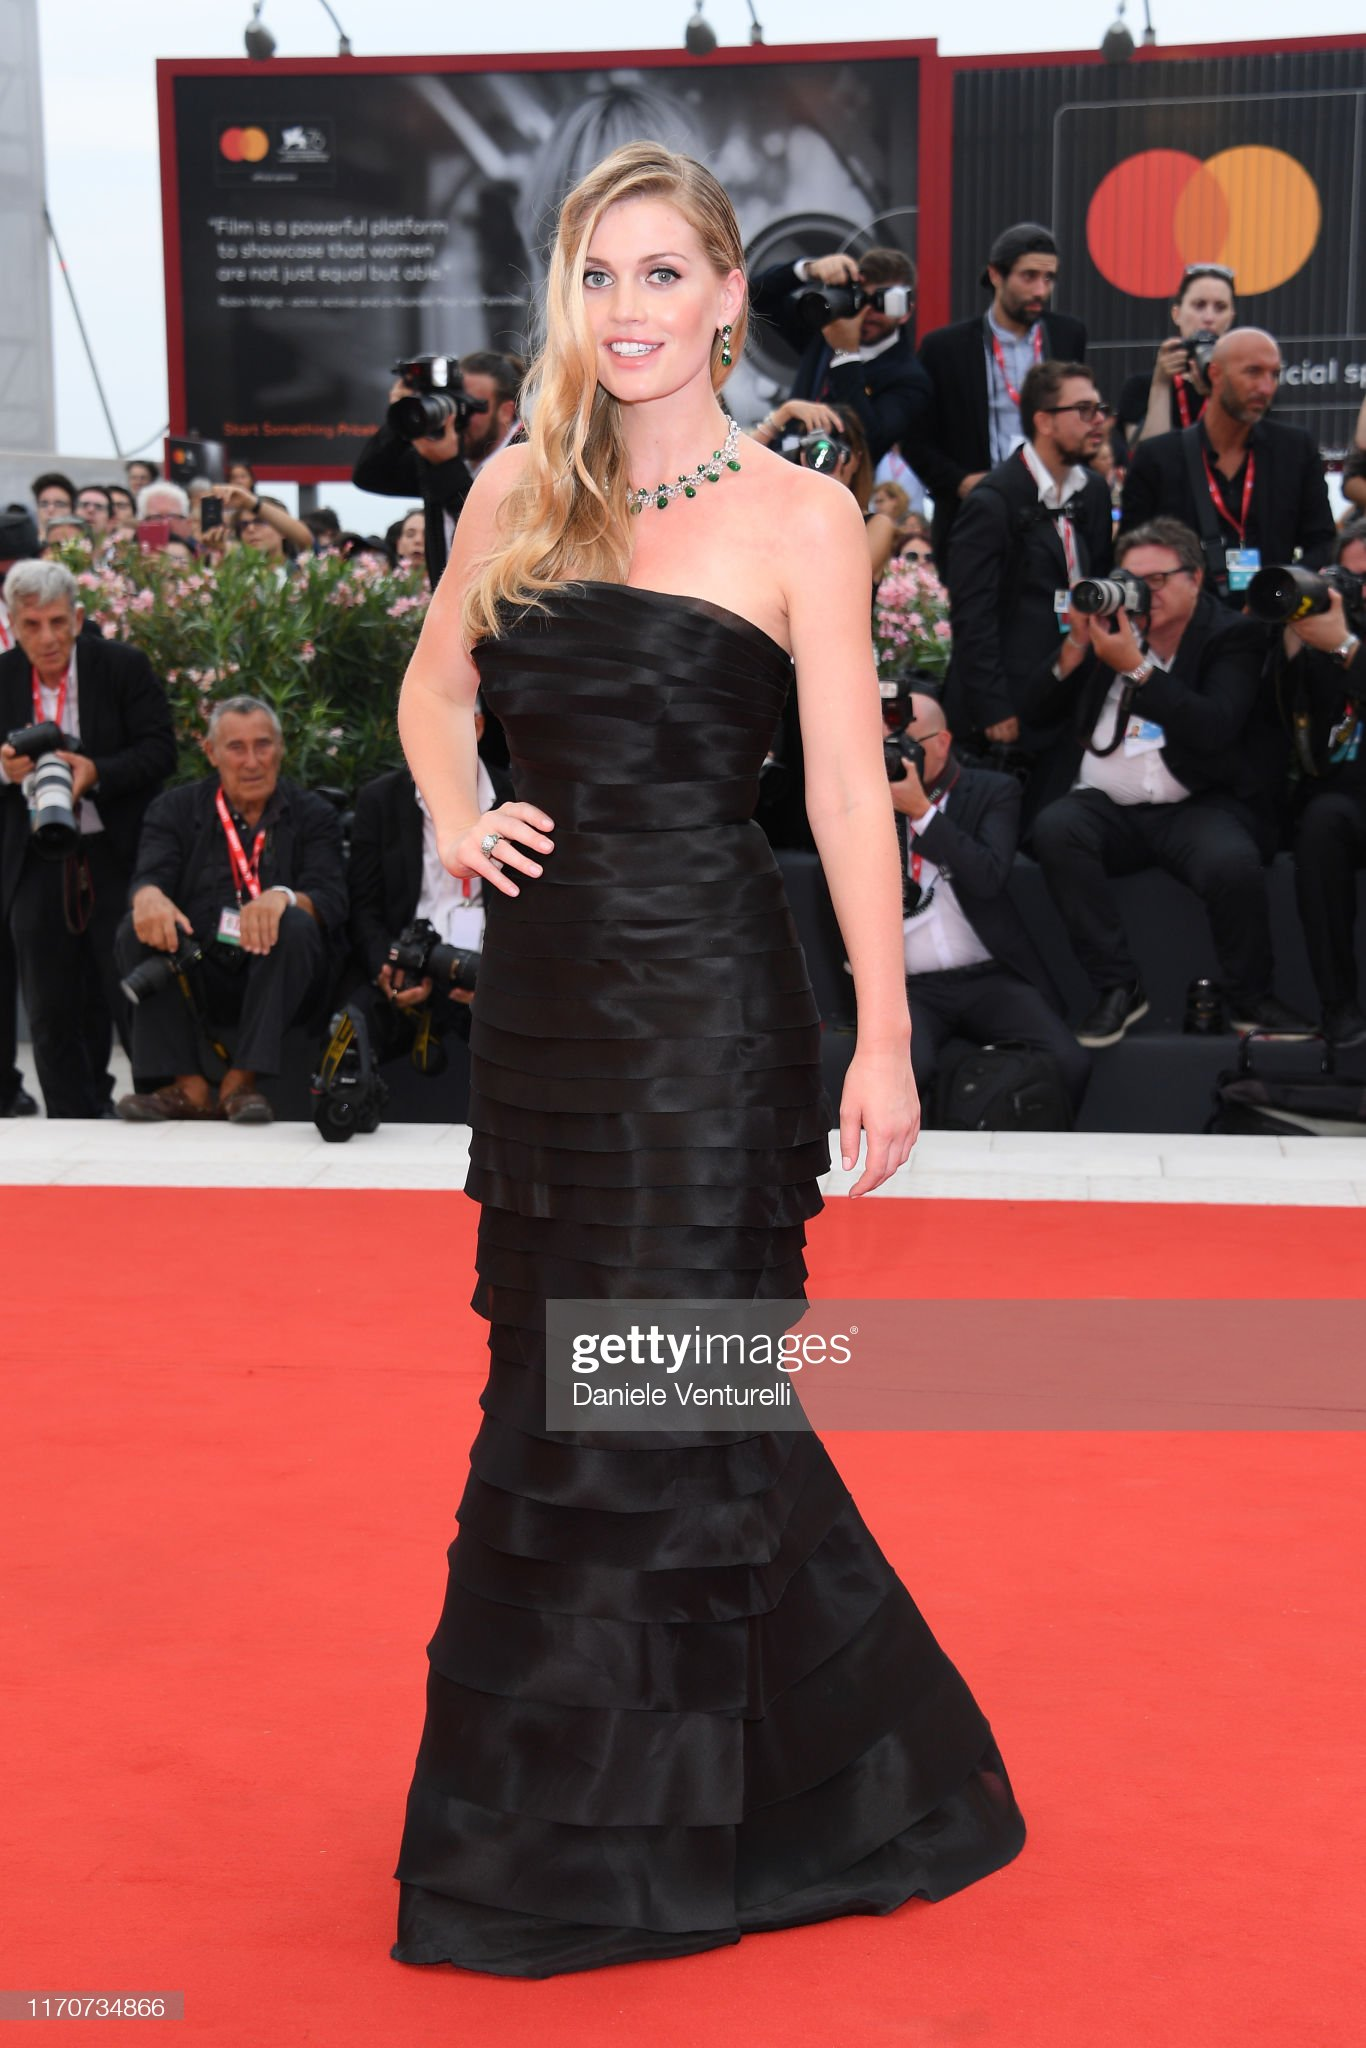 https://media.gettyimages.com/photos/lady-kitty-spencer-walks-the-red-carpet-ahead-of-the-opening-ceremony-picture-id1170734866?s=2048x2048